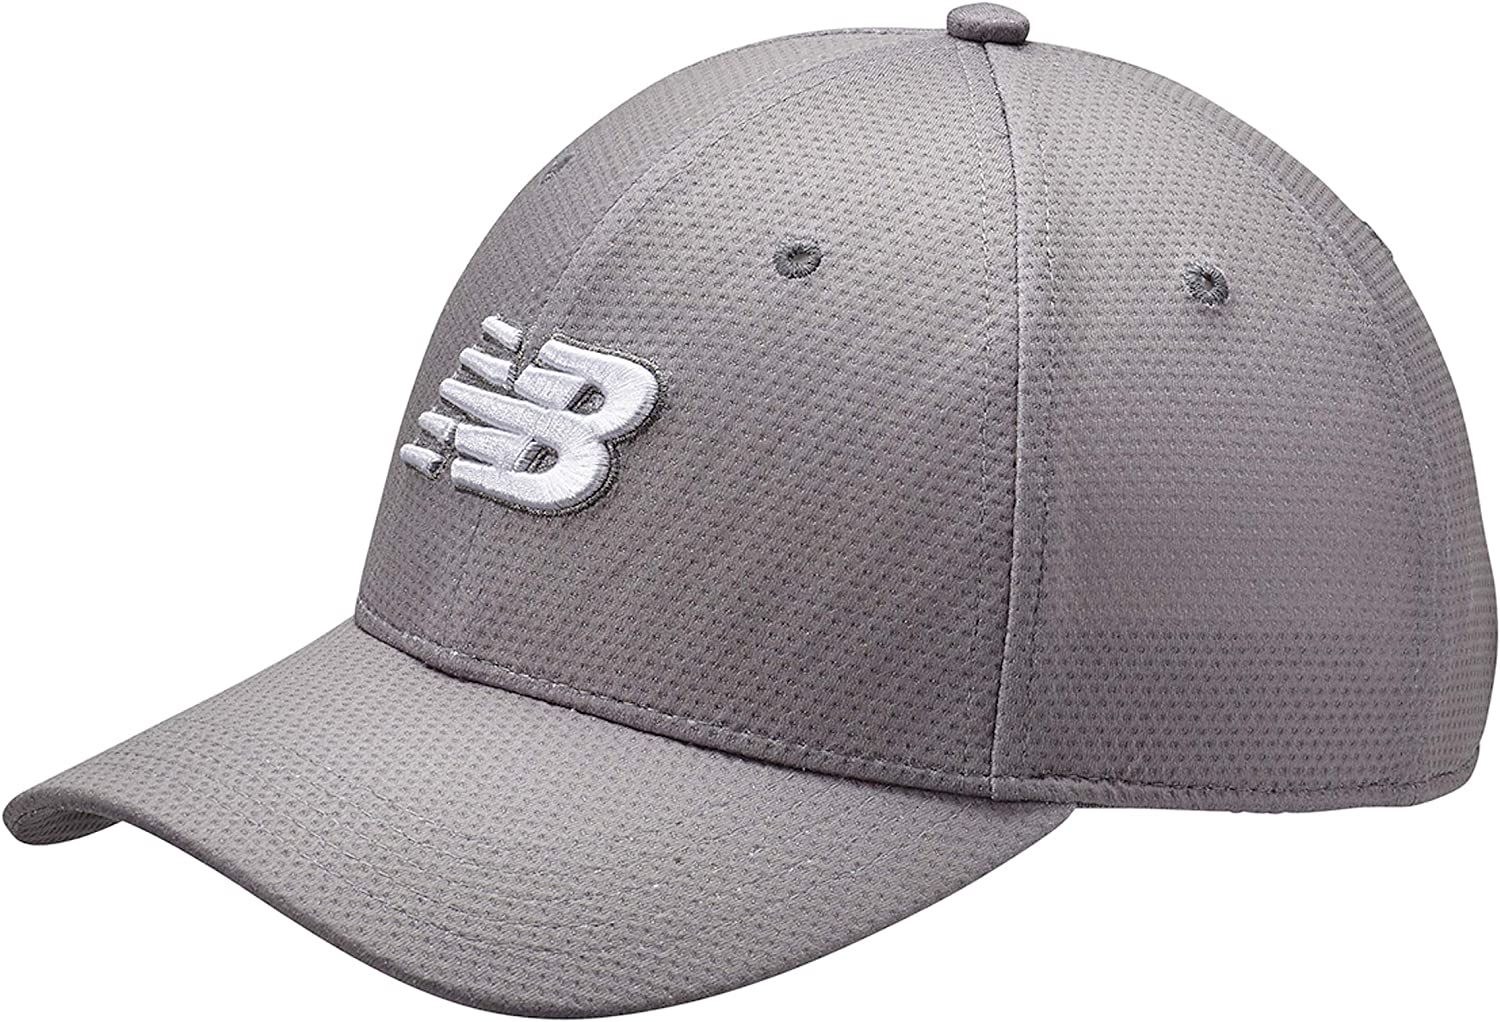 New Balance Men's and Women's Knit Training Hat, Adjustable Moisture Wiicking Snapback Cap